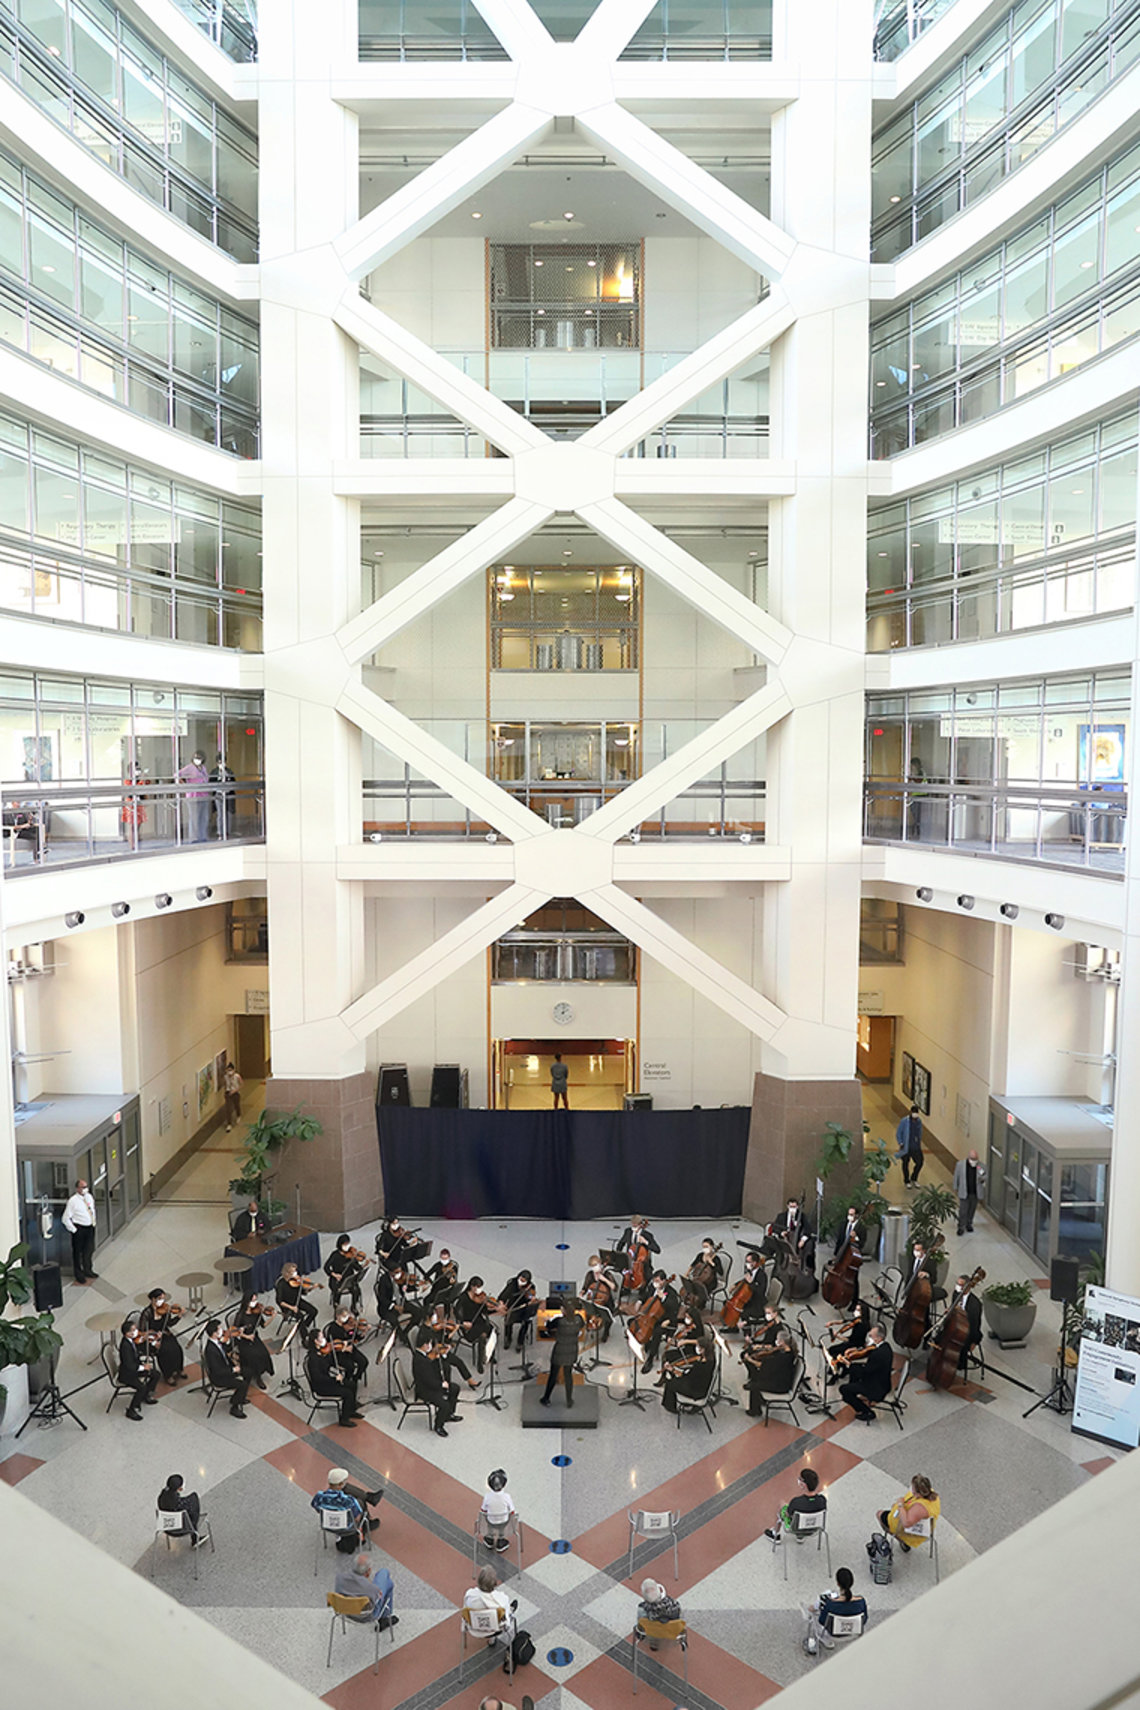 Aerial view of the atrium: orchestra performs with audience scattered, sitting 6 feet apart. Staff can be seen watching through windows in hallways above.